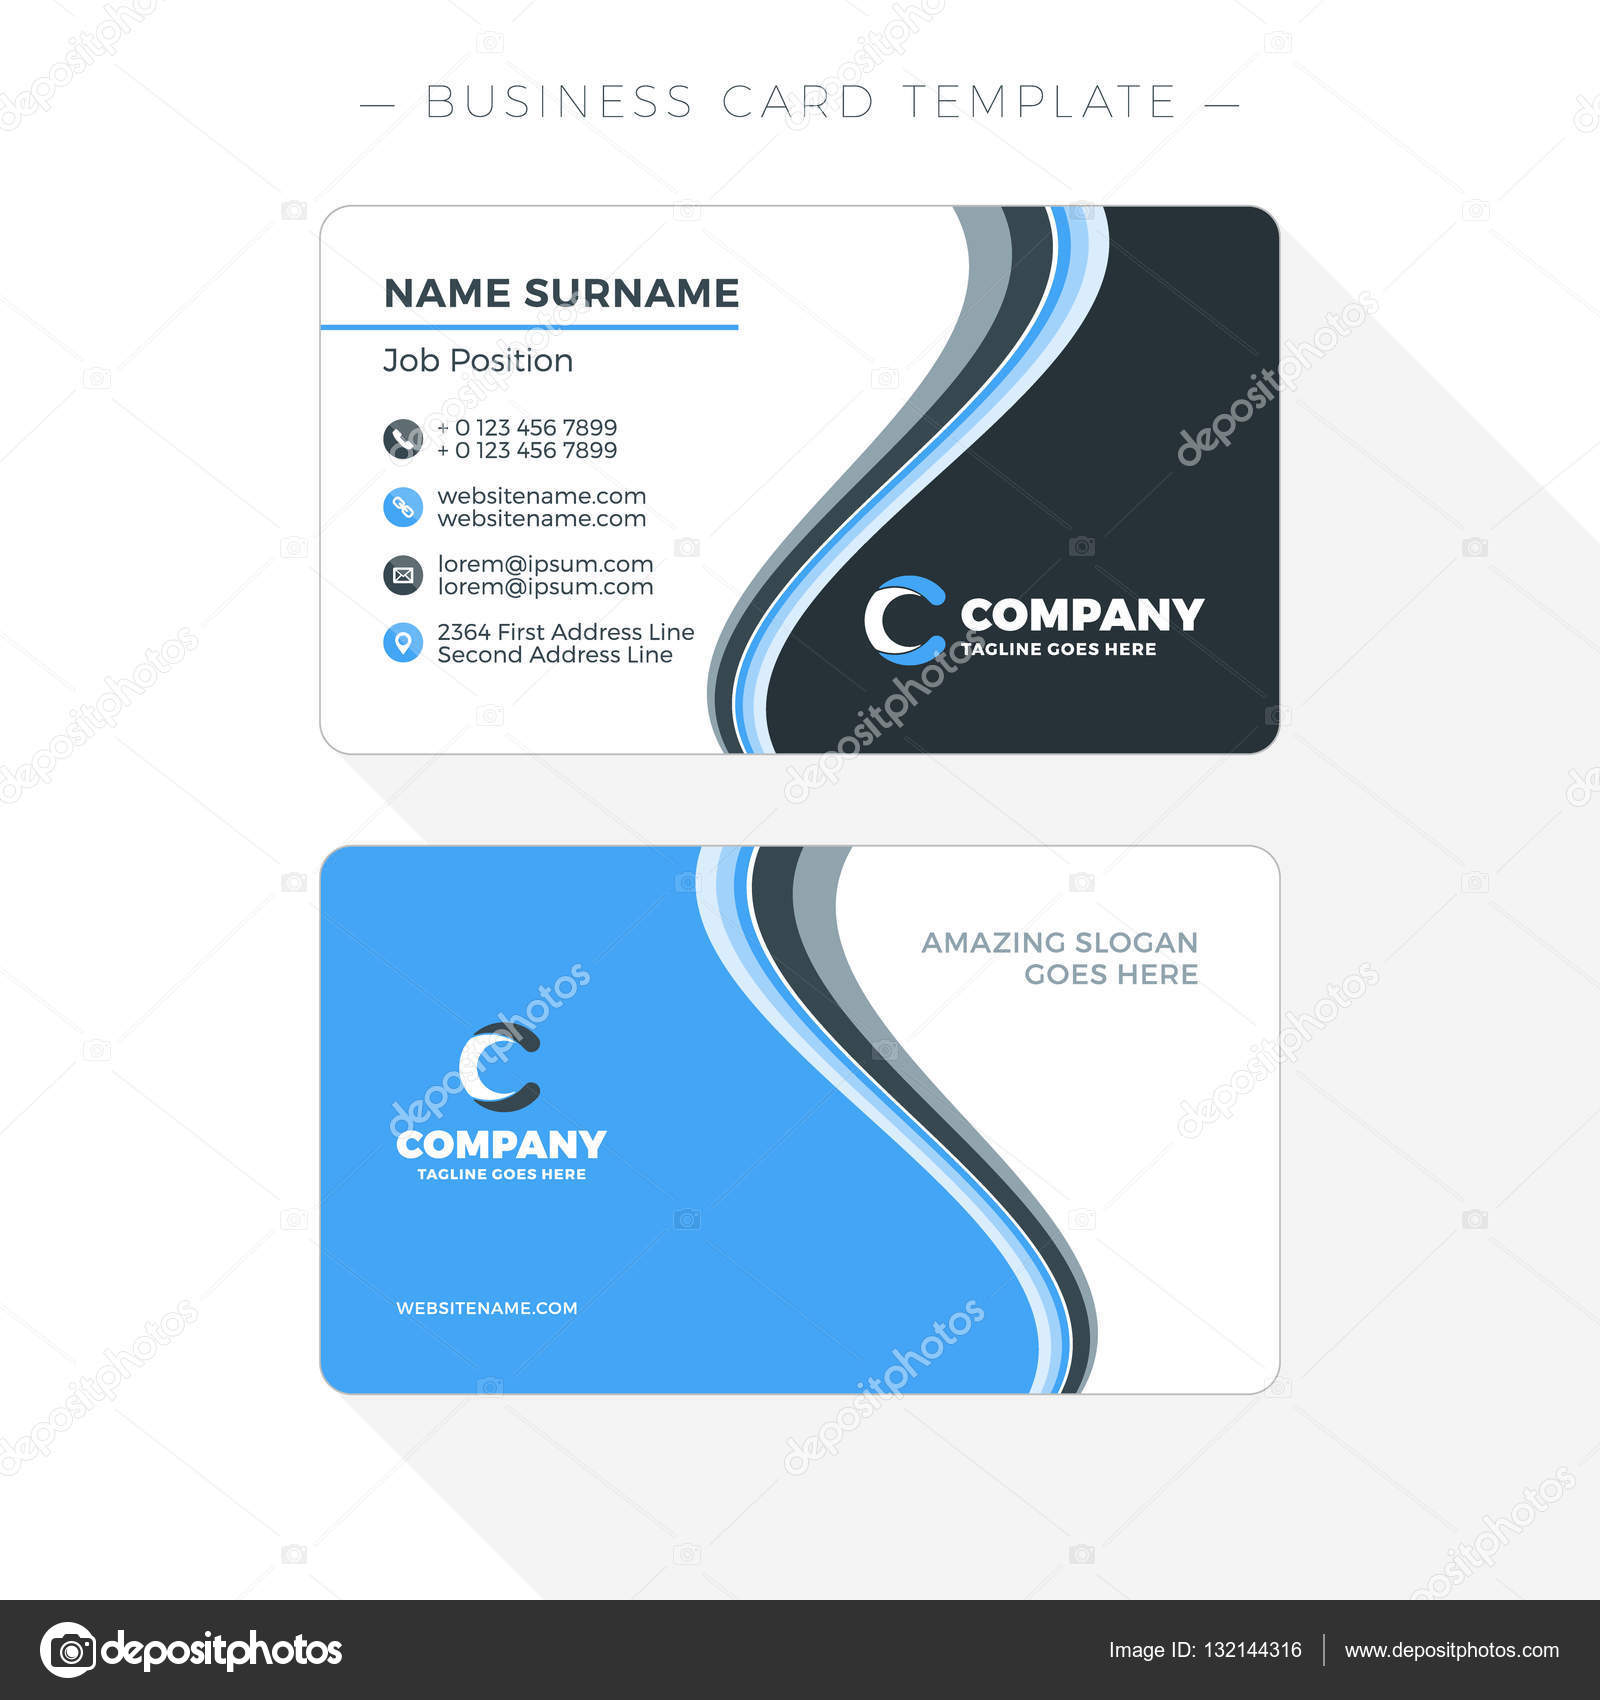 Double-sided Business Card Template with Abstract Blue and Black ...